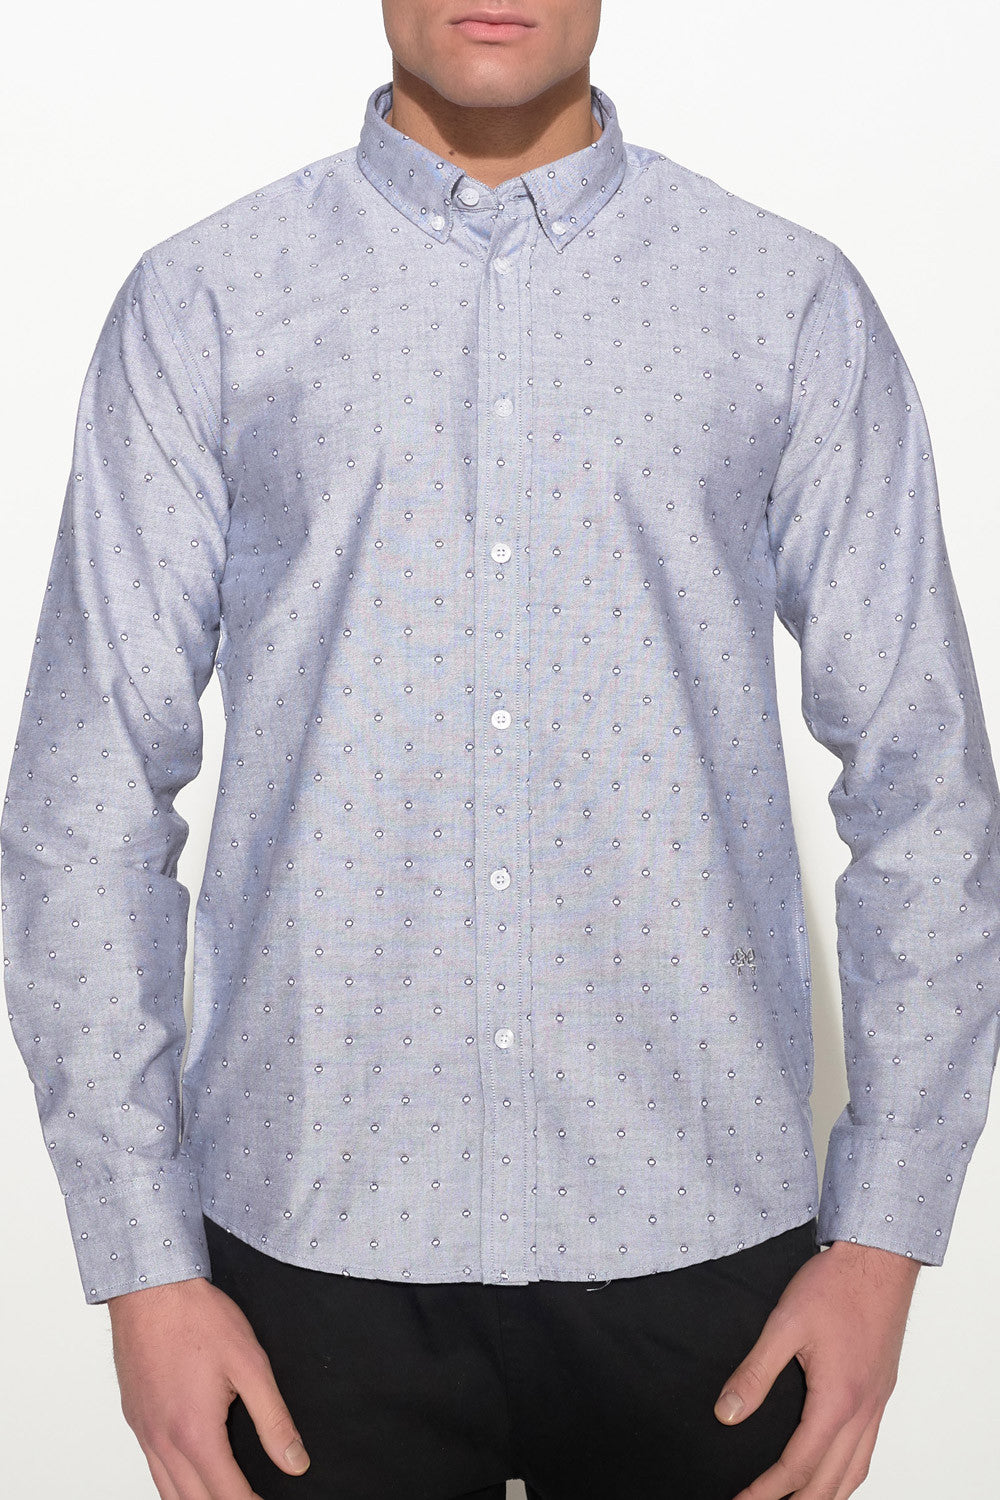 SOULLAND - GOLDSMITH OXFORD SHIRT – GREY W. DOTS - Men Clothing - Ozon Boutique - 3